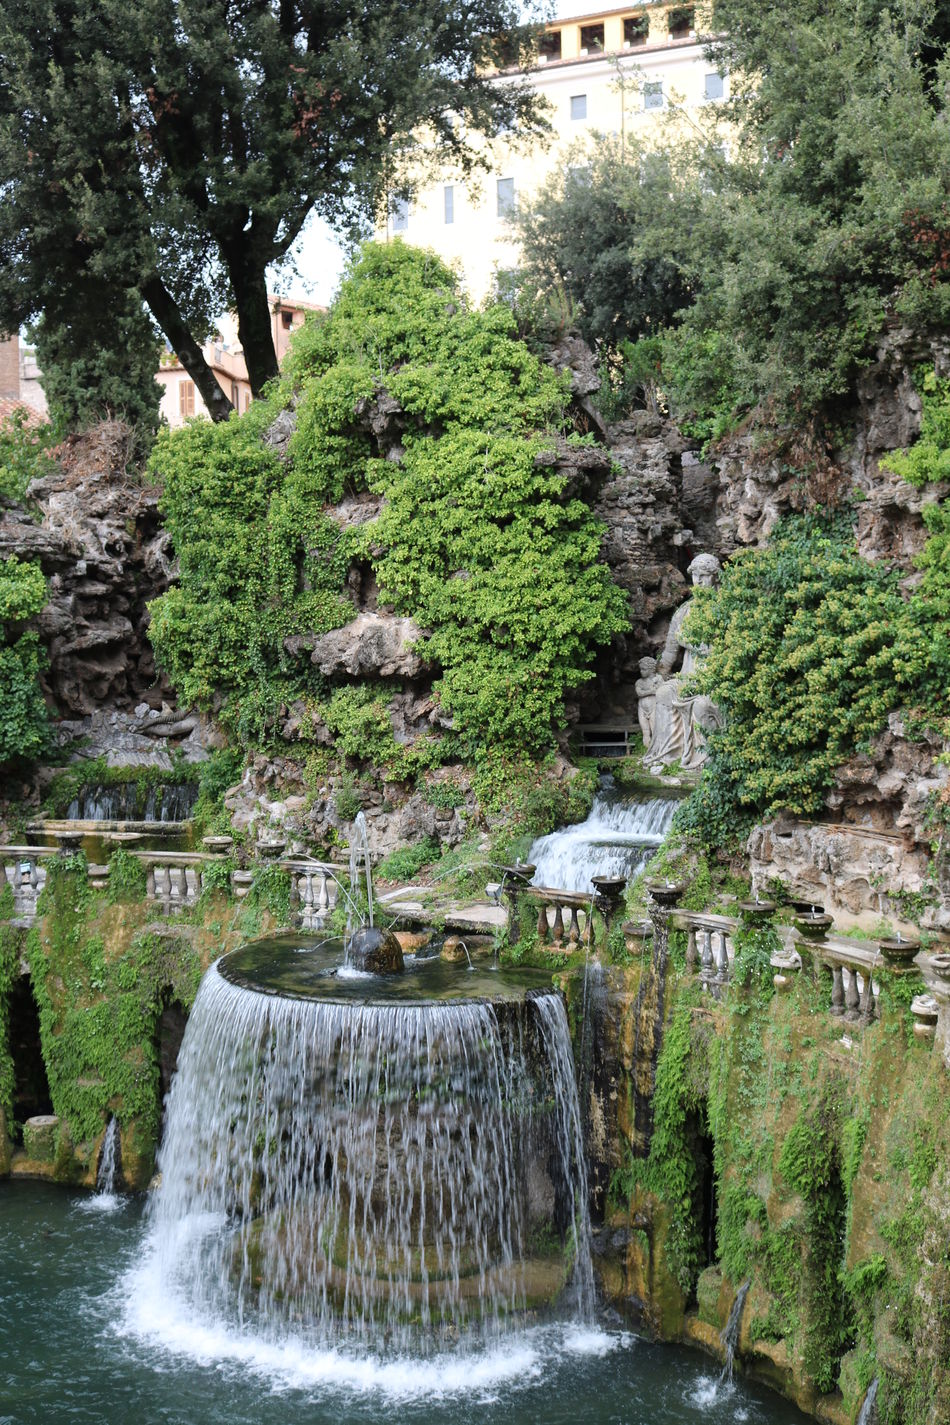 Tivoli, Villa D Este and Garden Beauty In Nature Day Flowers,Plants & Garden Freshness Growth Italy Japanese Garden Nature No People Outdoors Scenics Tivoli Tivoli Garden Tranquility Tree Villa D'Este Water Waterfall